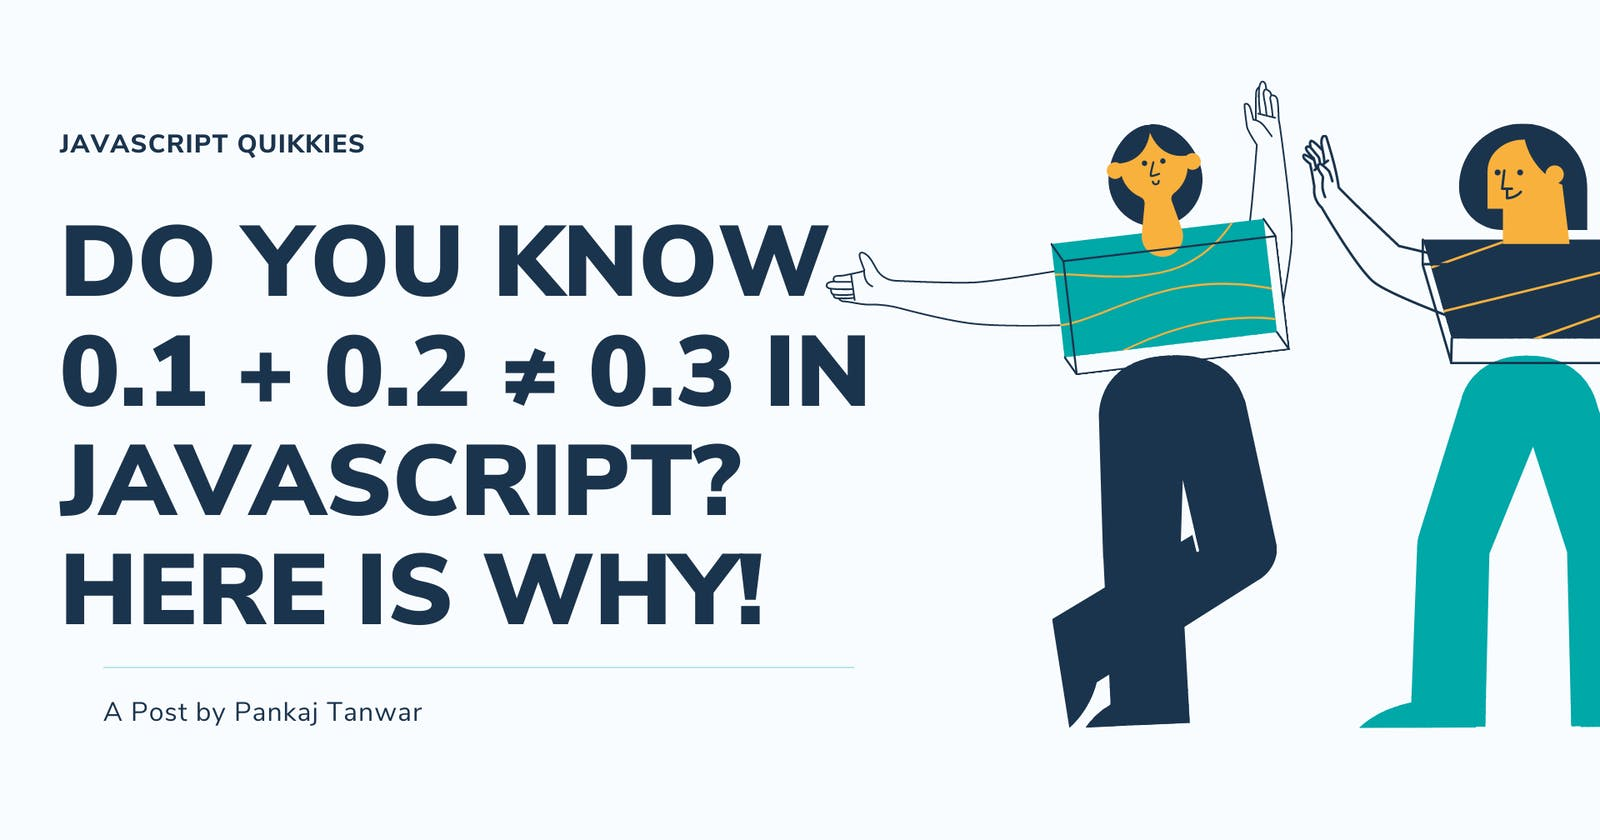 Do you know 0.1 + 0.2 ≠ 0.3 in JavaScript? Here is why!